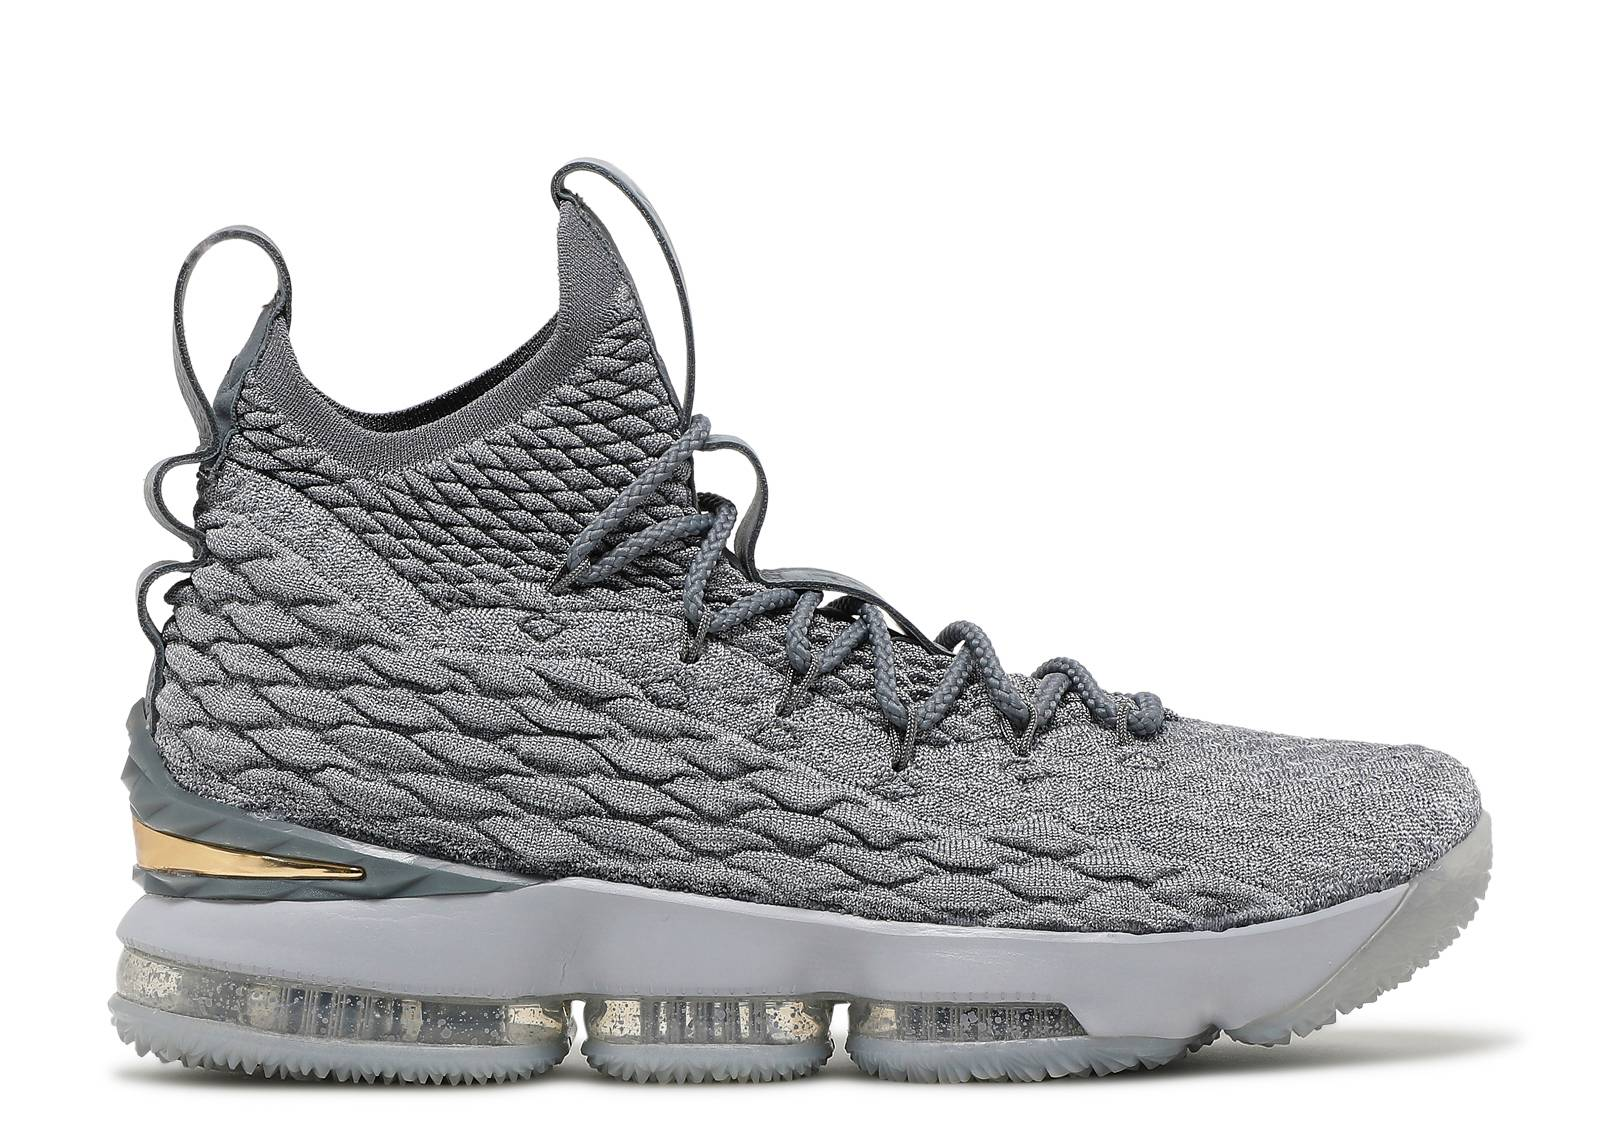 81446952fd874 Lebron 15 - Nike - 897648 005 - wolf grey metallic gold